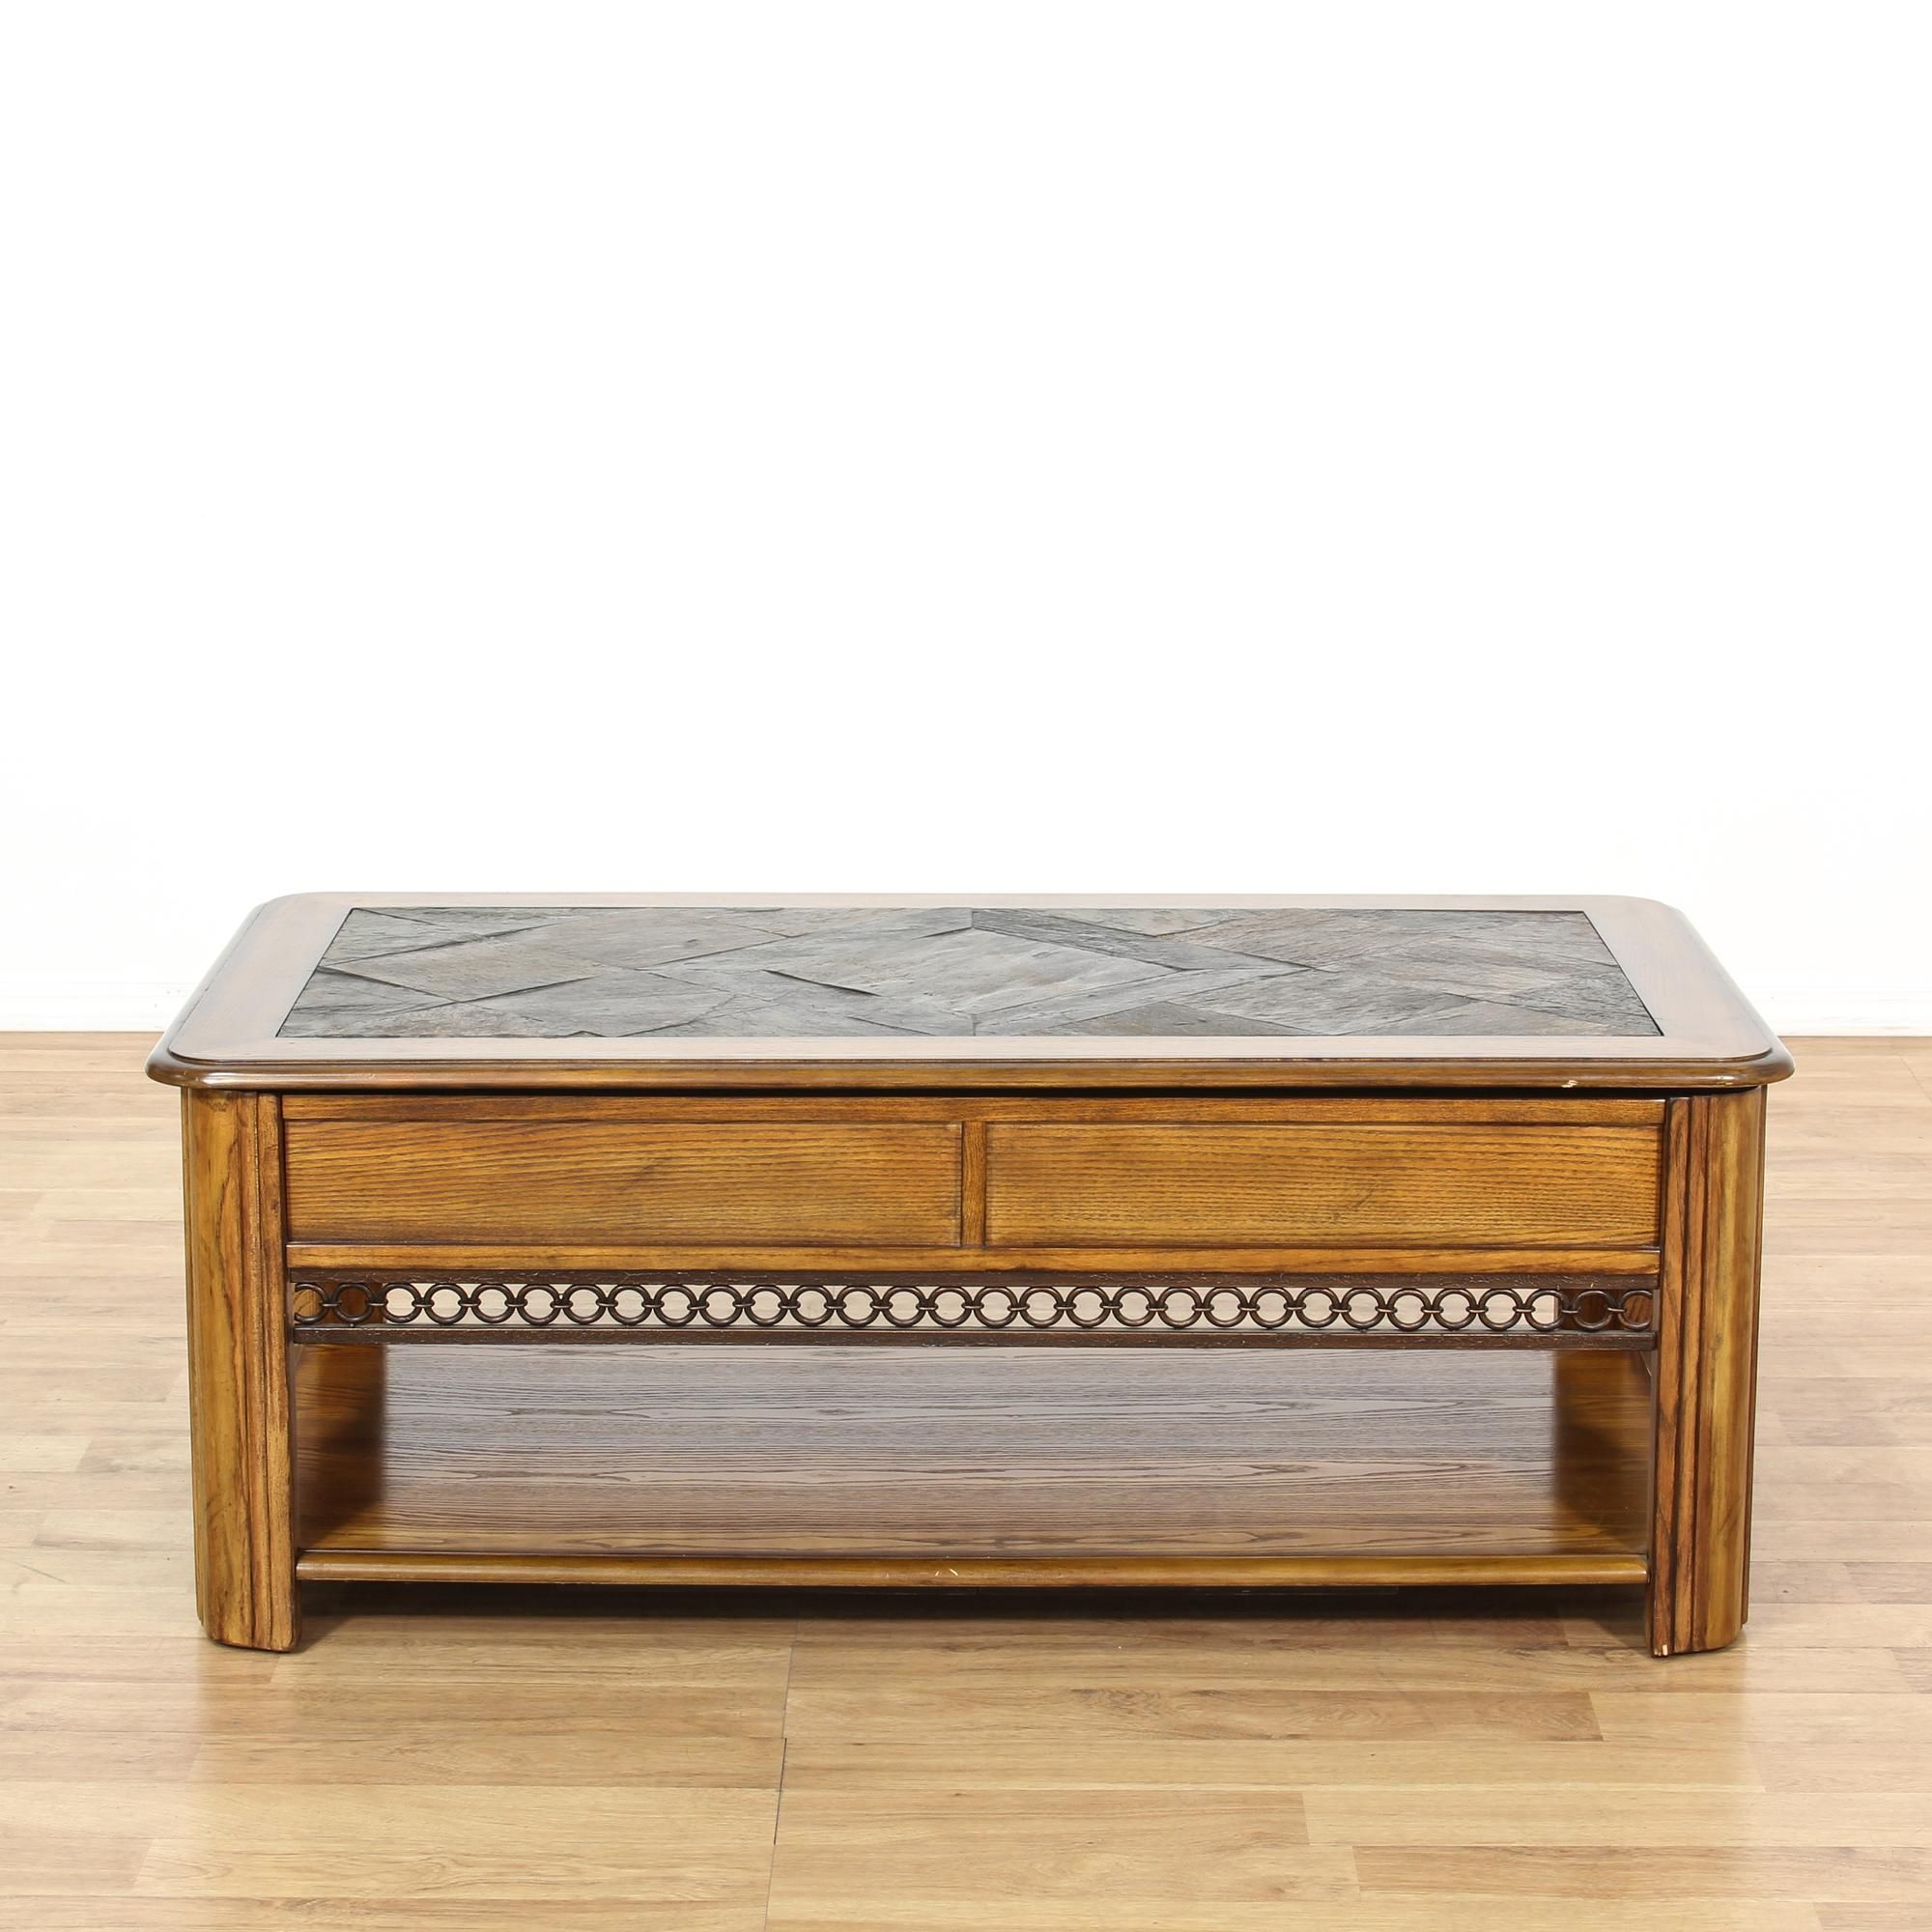 This rustic coffee table is featured in a solid wood with a glossy this rustic coffee table is featured in a solid wood with a glossy light oak finish this country chic coffee table has a lift up top with inset slate tile geotapseo Images